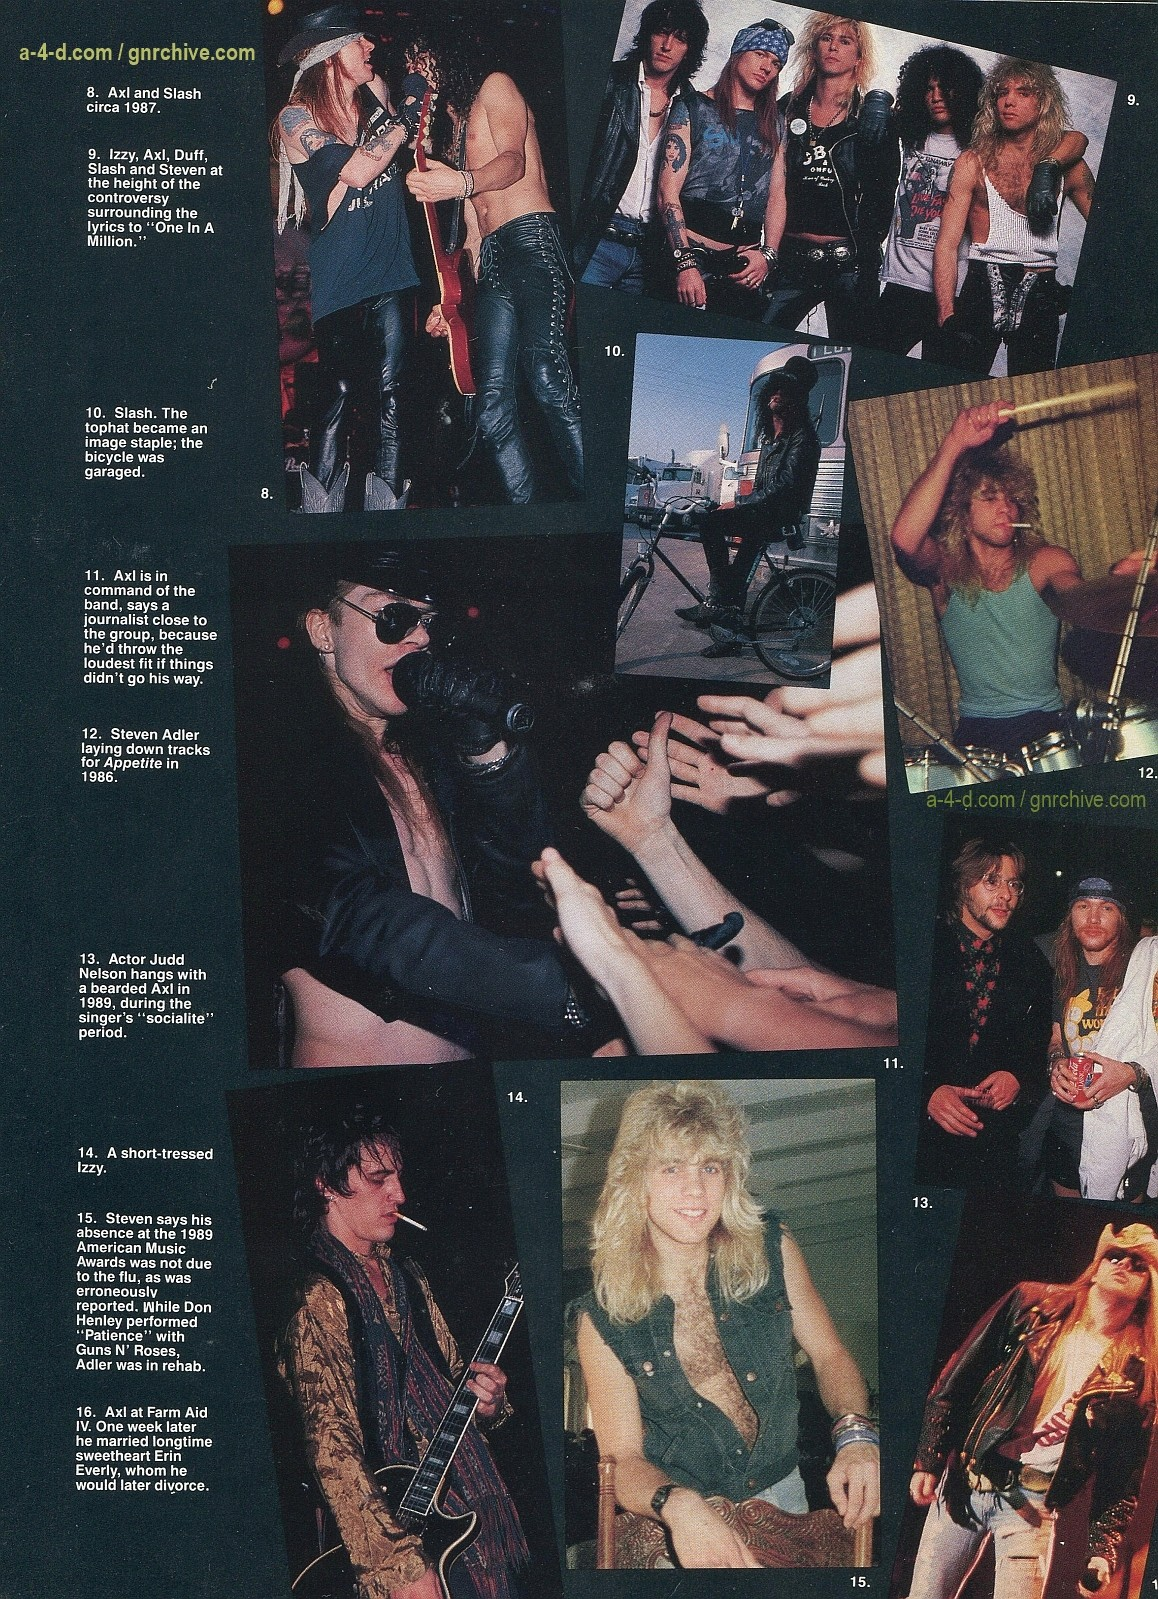 1991.10.31 - Circus - Axl Rose mocked/Fightin' words from Vince Neil 1991-116